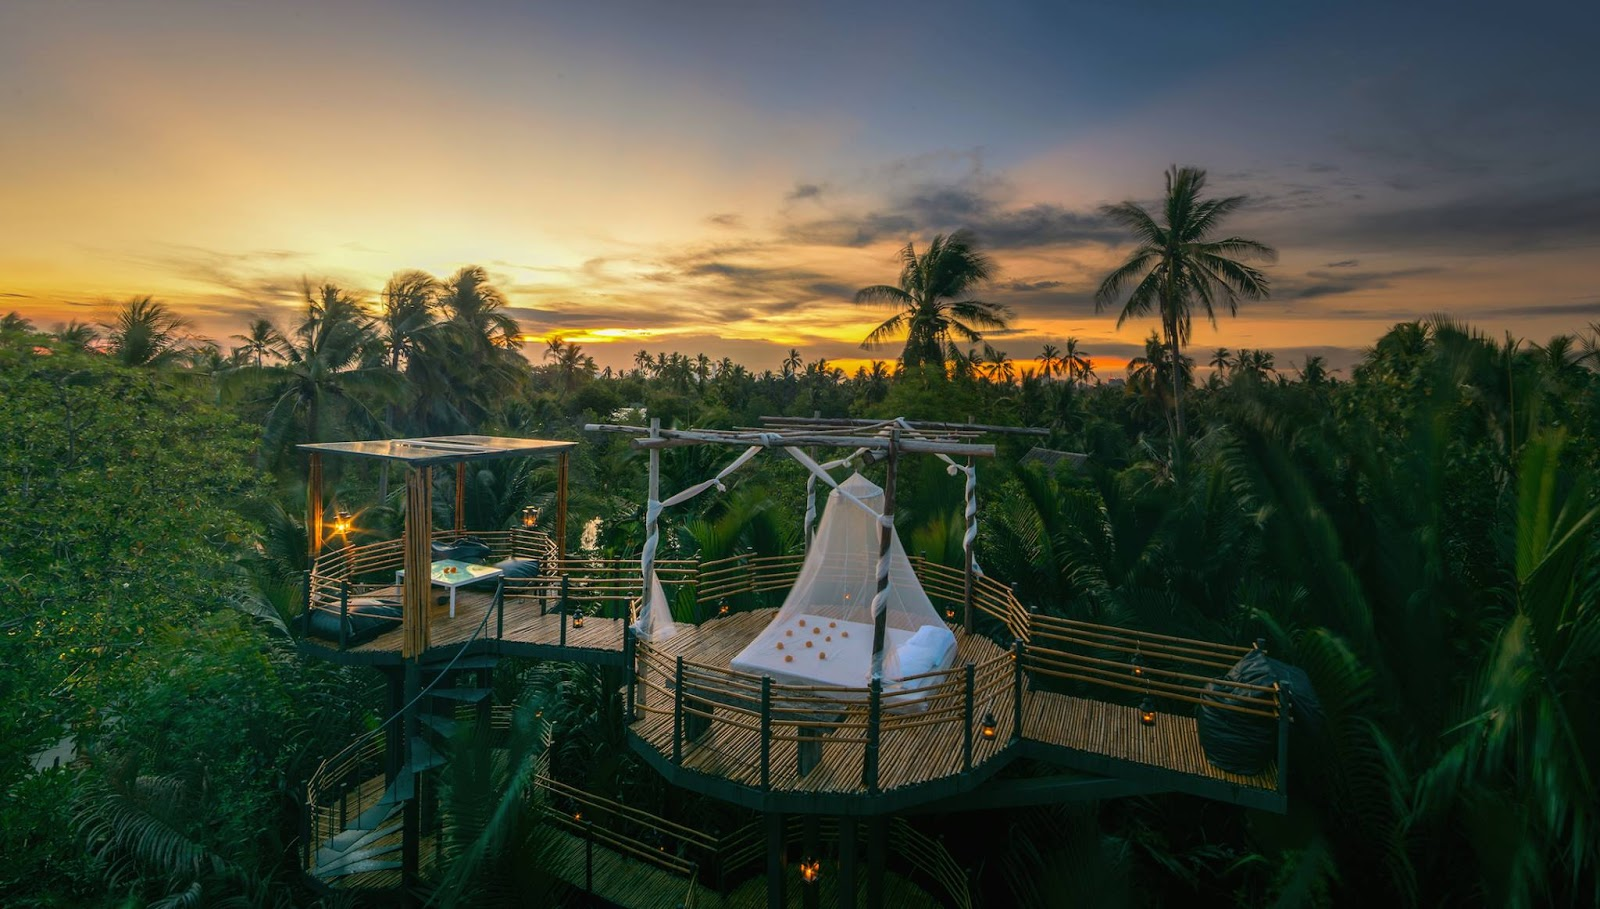 10 Unique Hotels in Bangkok That You Can't Resist